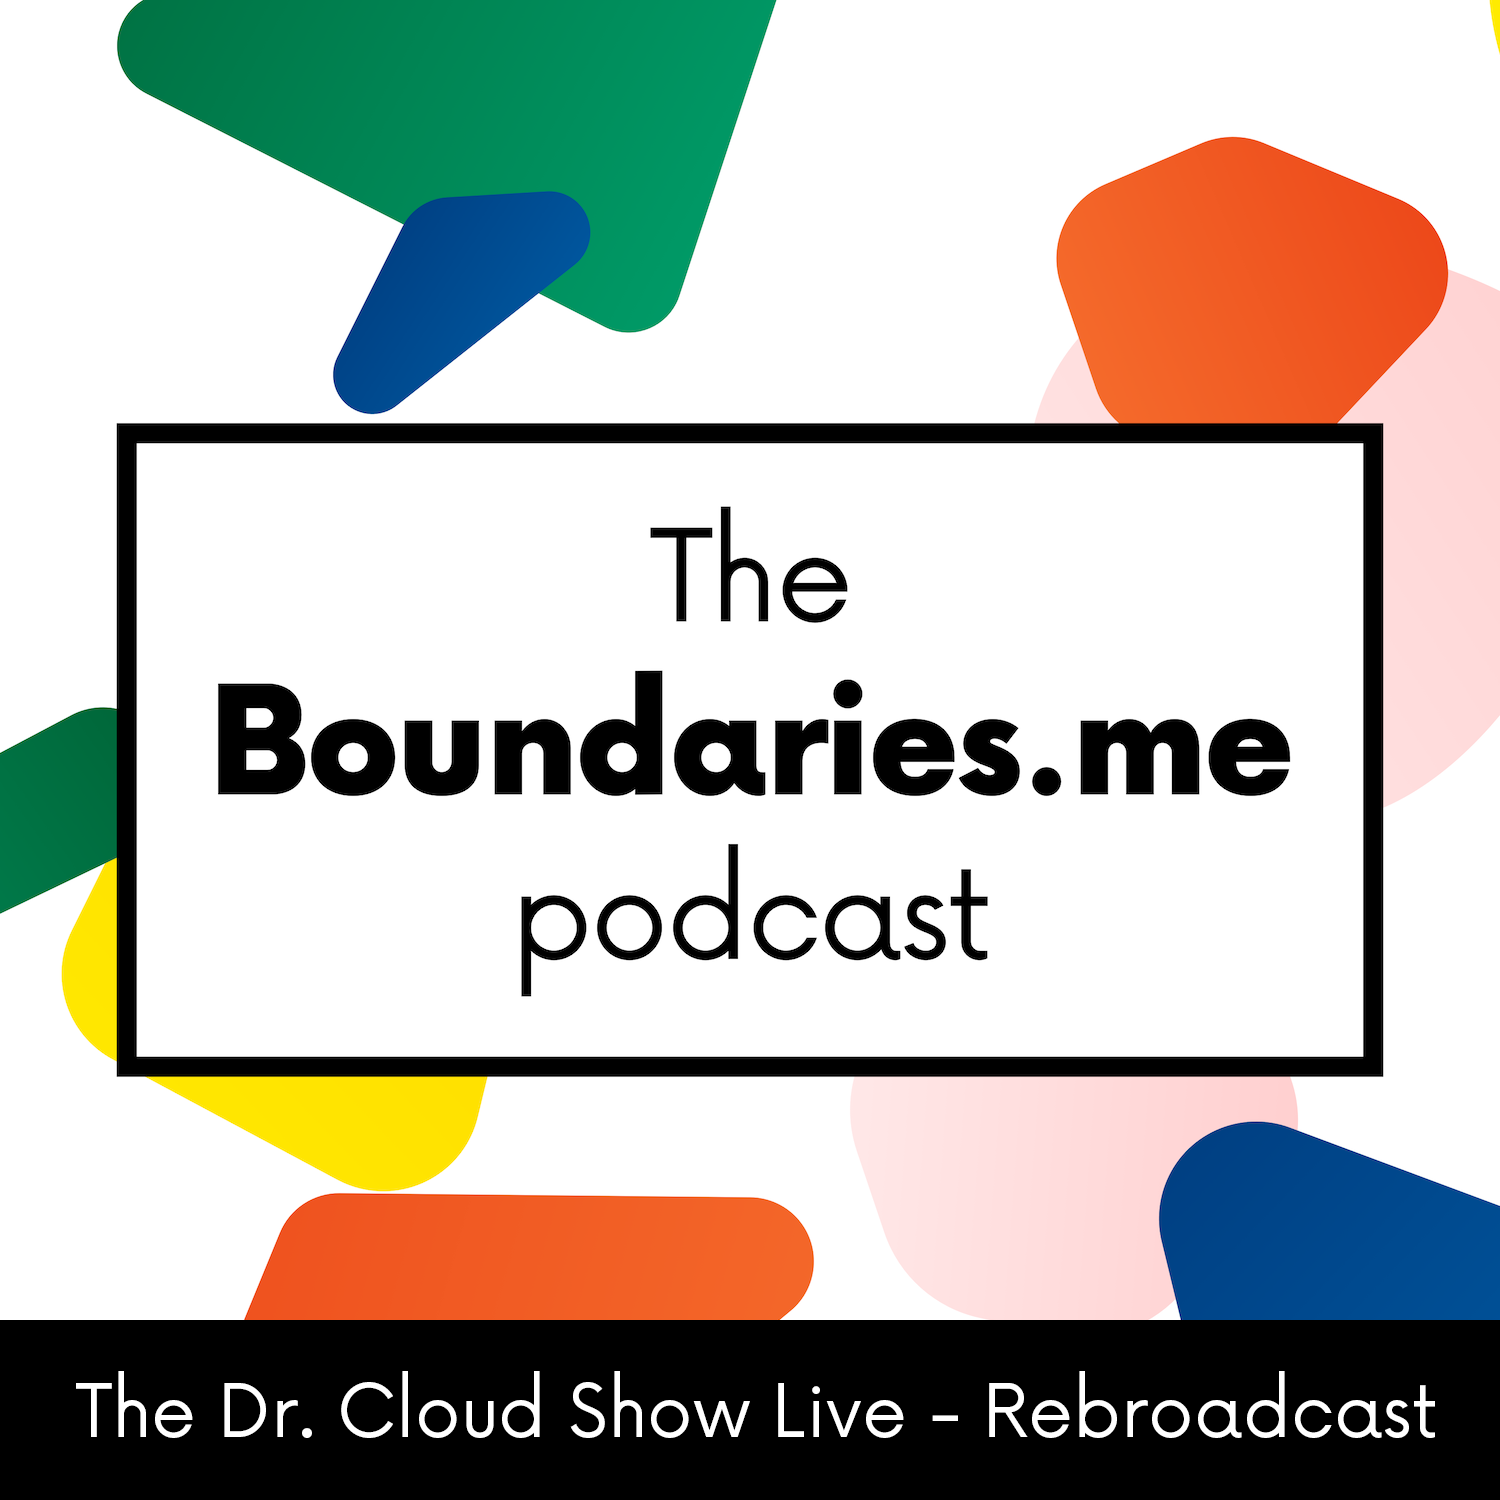 Episode 29 - The Dr. Cloud Show Live - The Importance of The Mothering Role